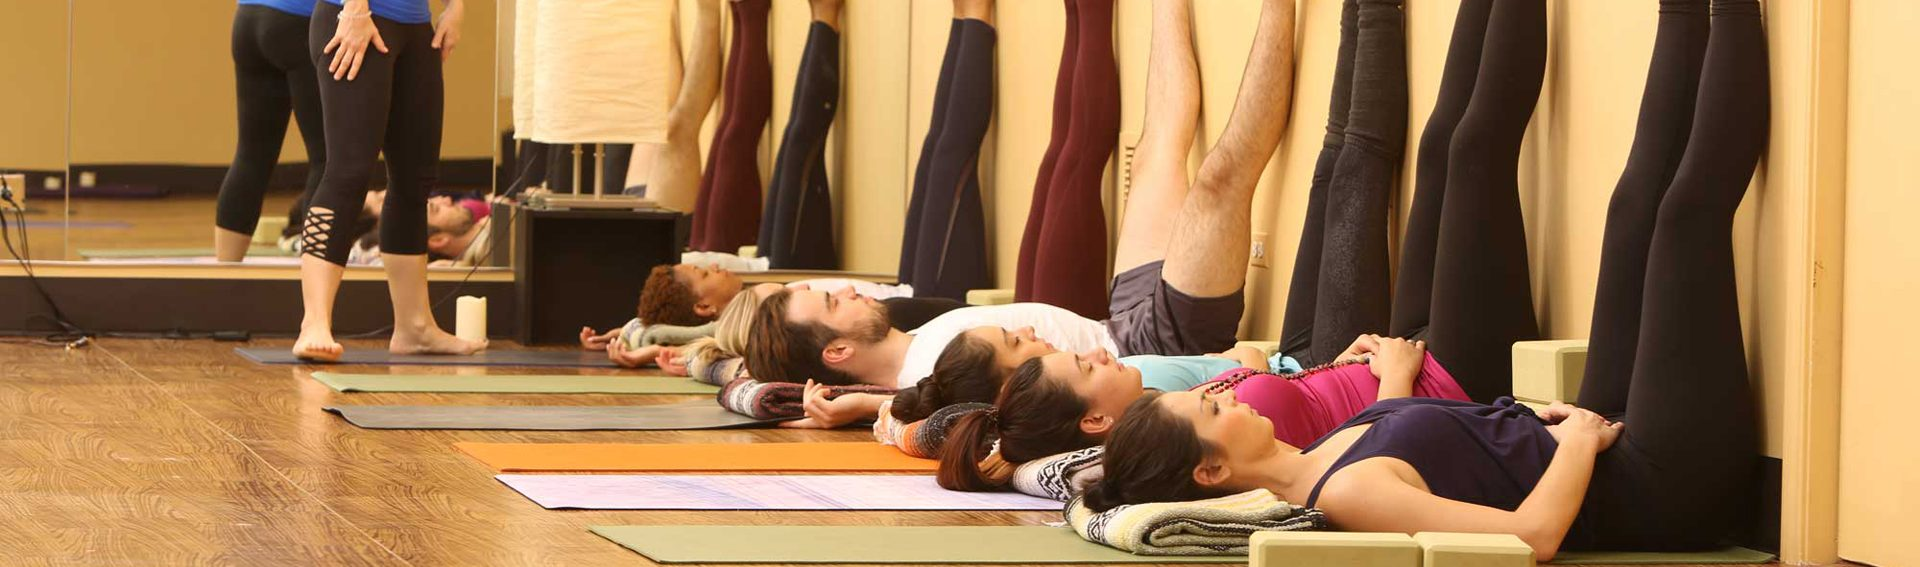 Yoga class, laying on their backs with their legs in the air against a wall